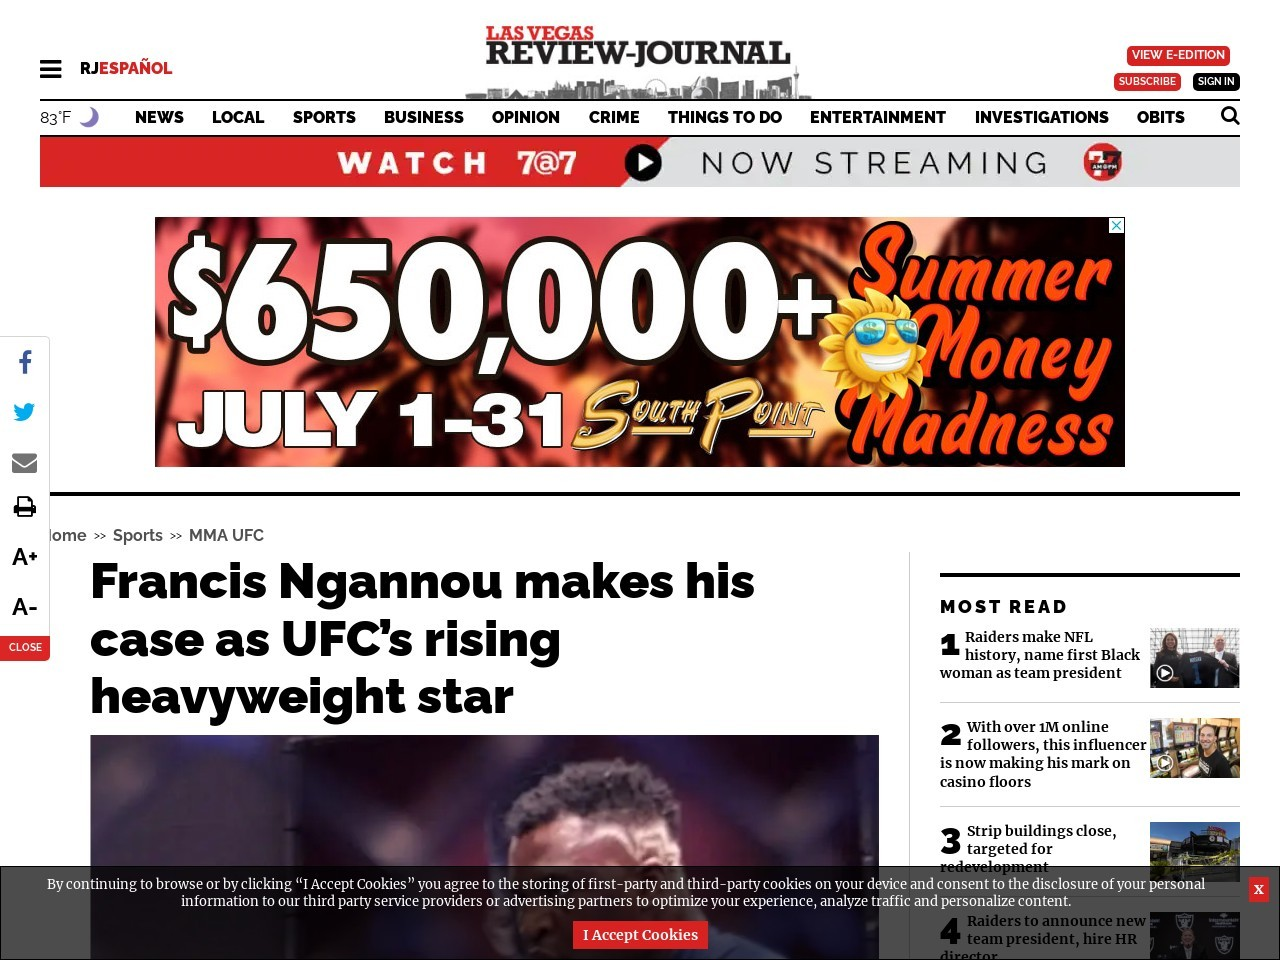 Francis Ngannou makes his case as UFC's rising heavyweight star